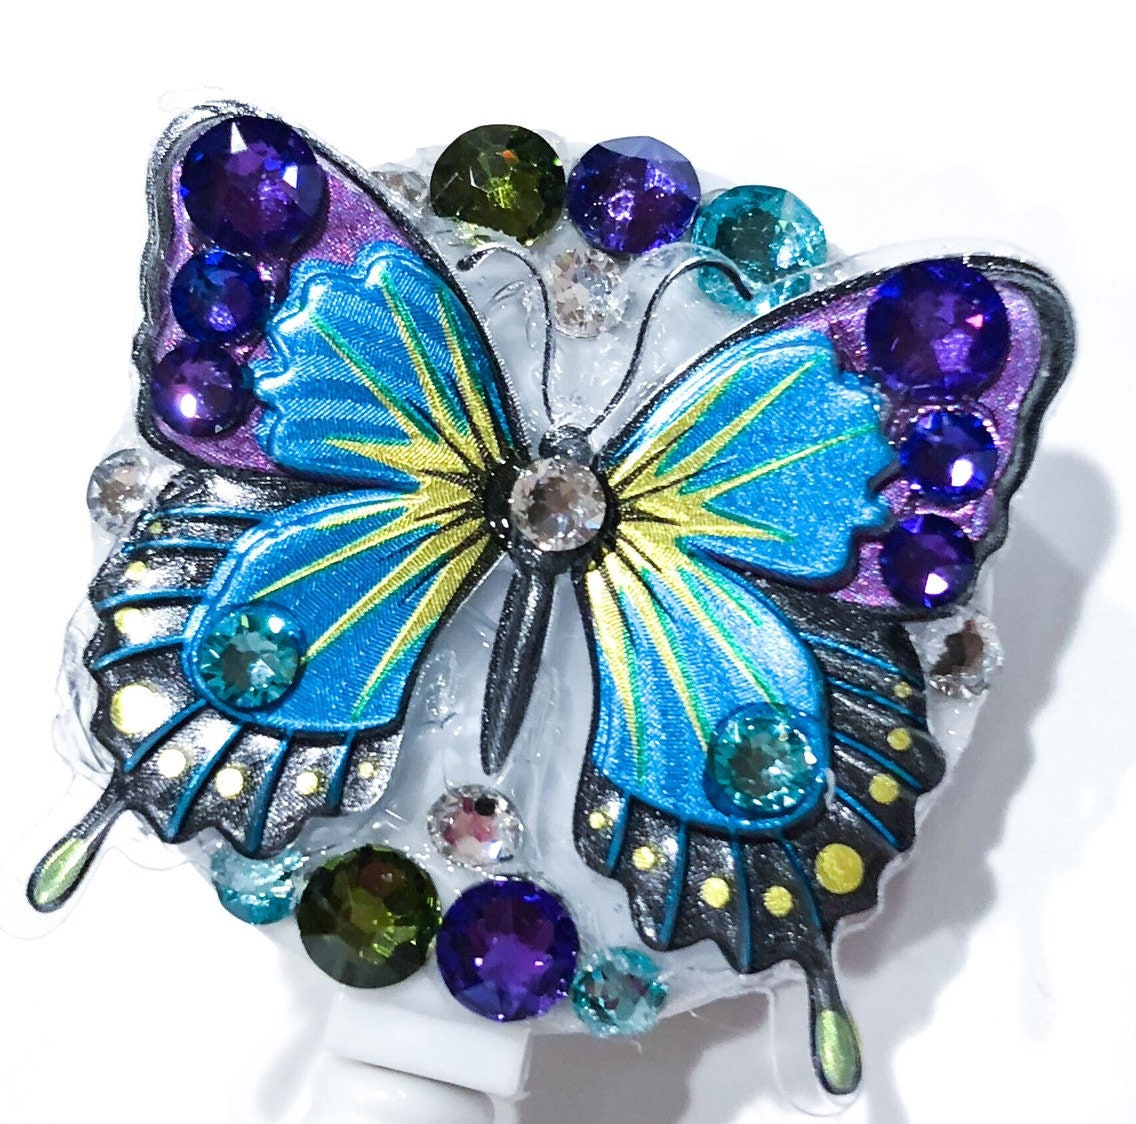 30c4a1e2add6a Beautiful Butterfly Swarovski Crystal Embellished Purple, Teal, Aqua, Green  Clear Crystal Bling Retractable Name Tag Holder ID Badge Reel